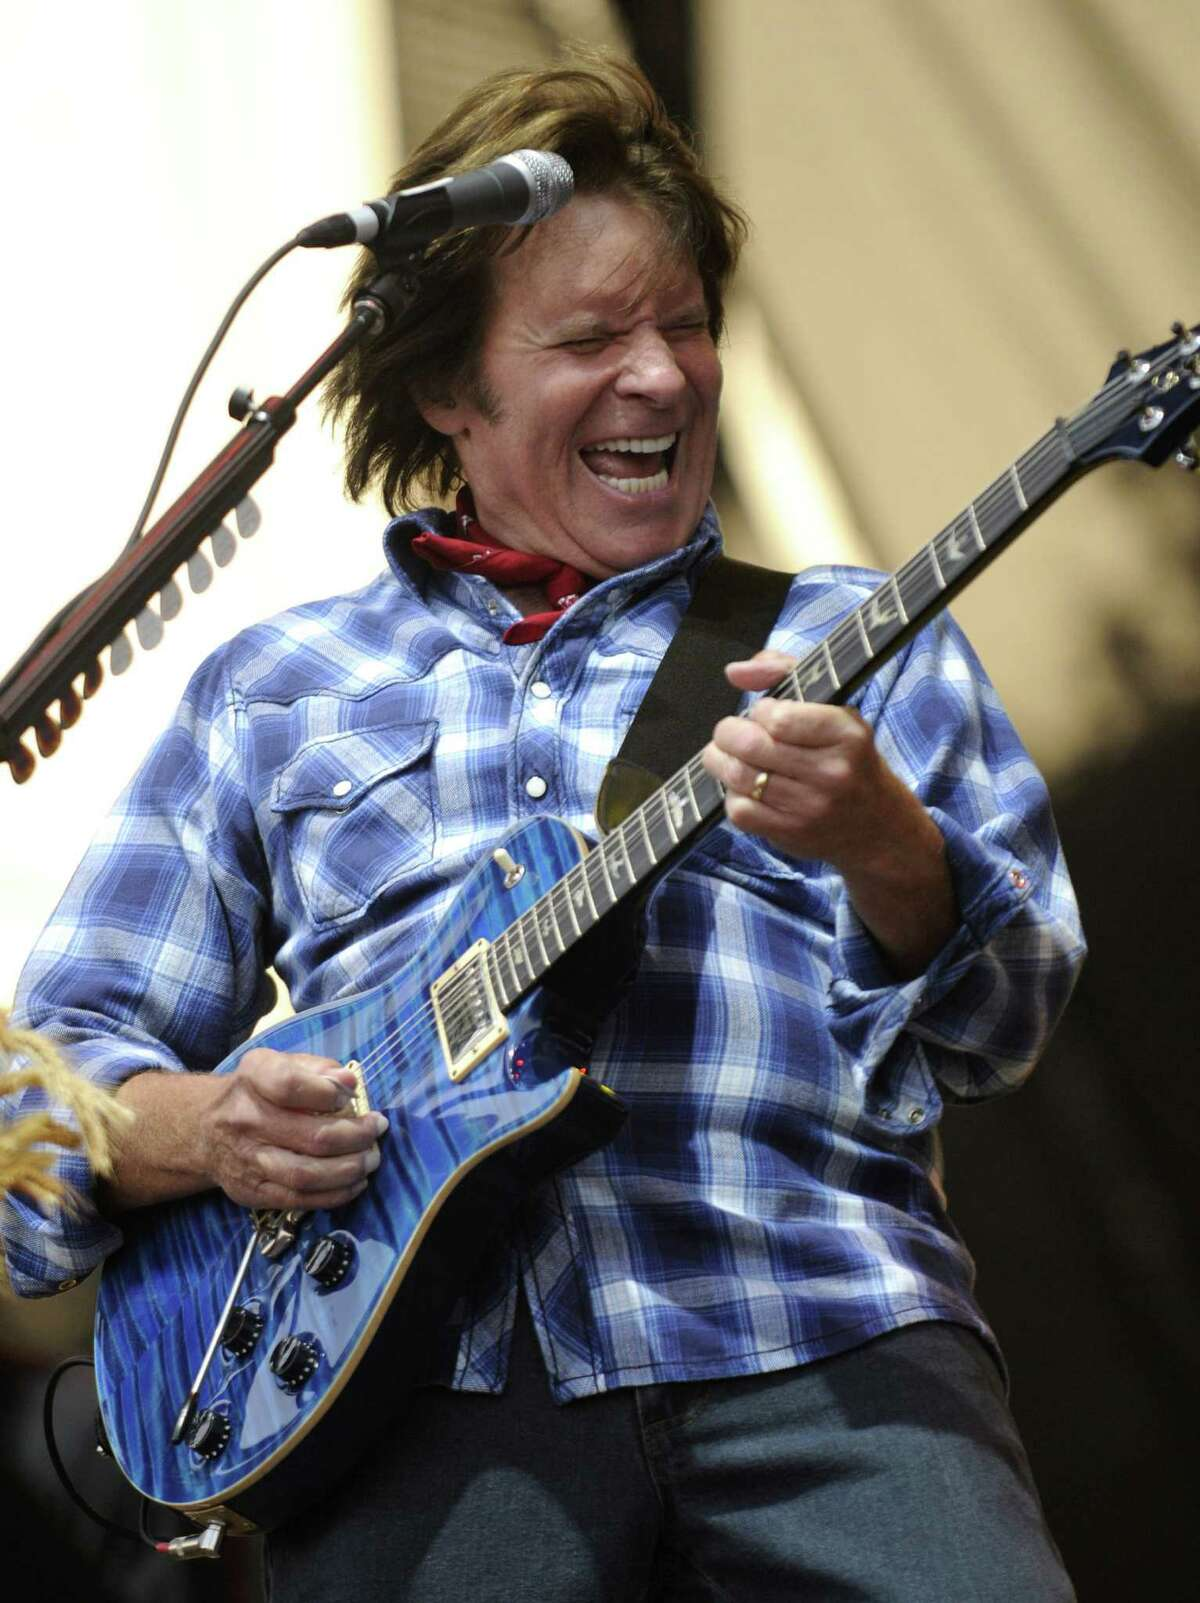 John Fogerty performs at Zilker Park during the 2008 Austin City Limits Festival on September 27, 2008 in Austin, Texas. (Photo by Kevin Mazur/WireImage)